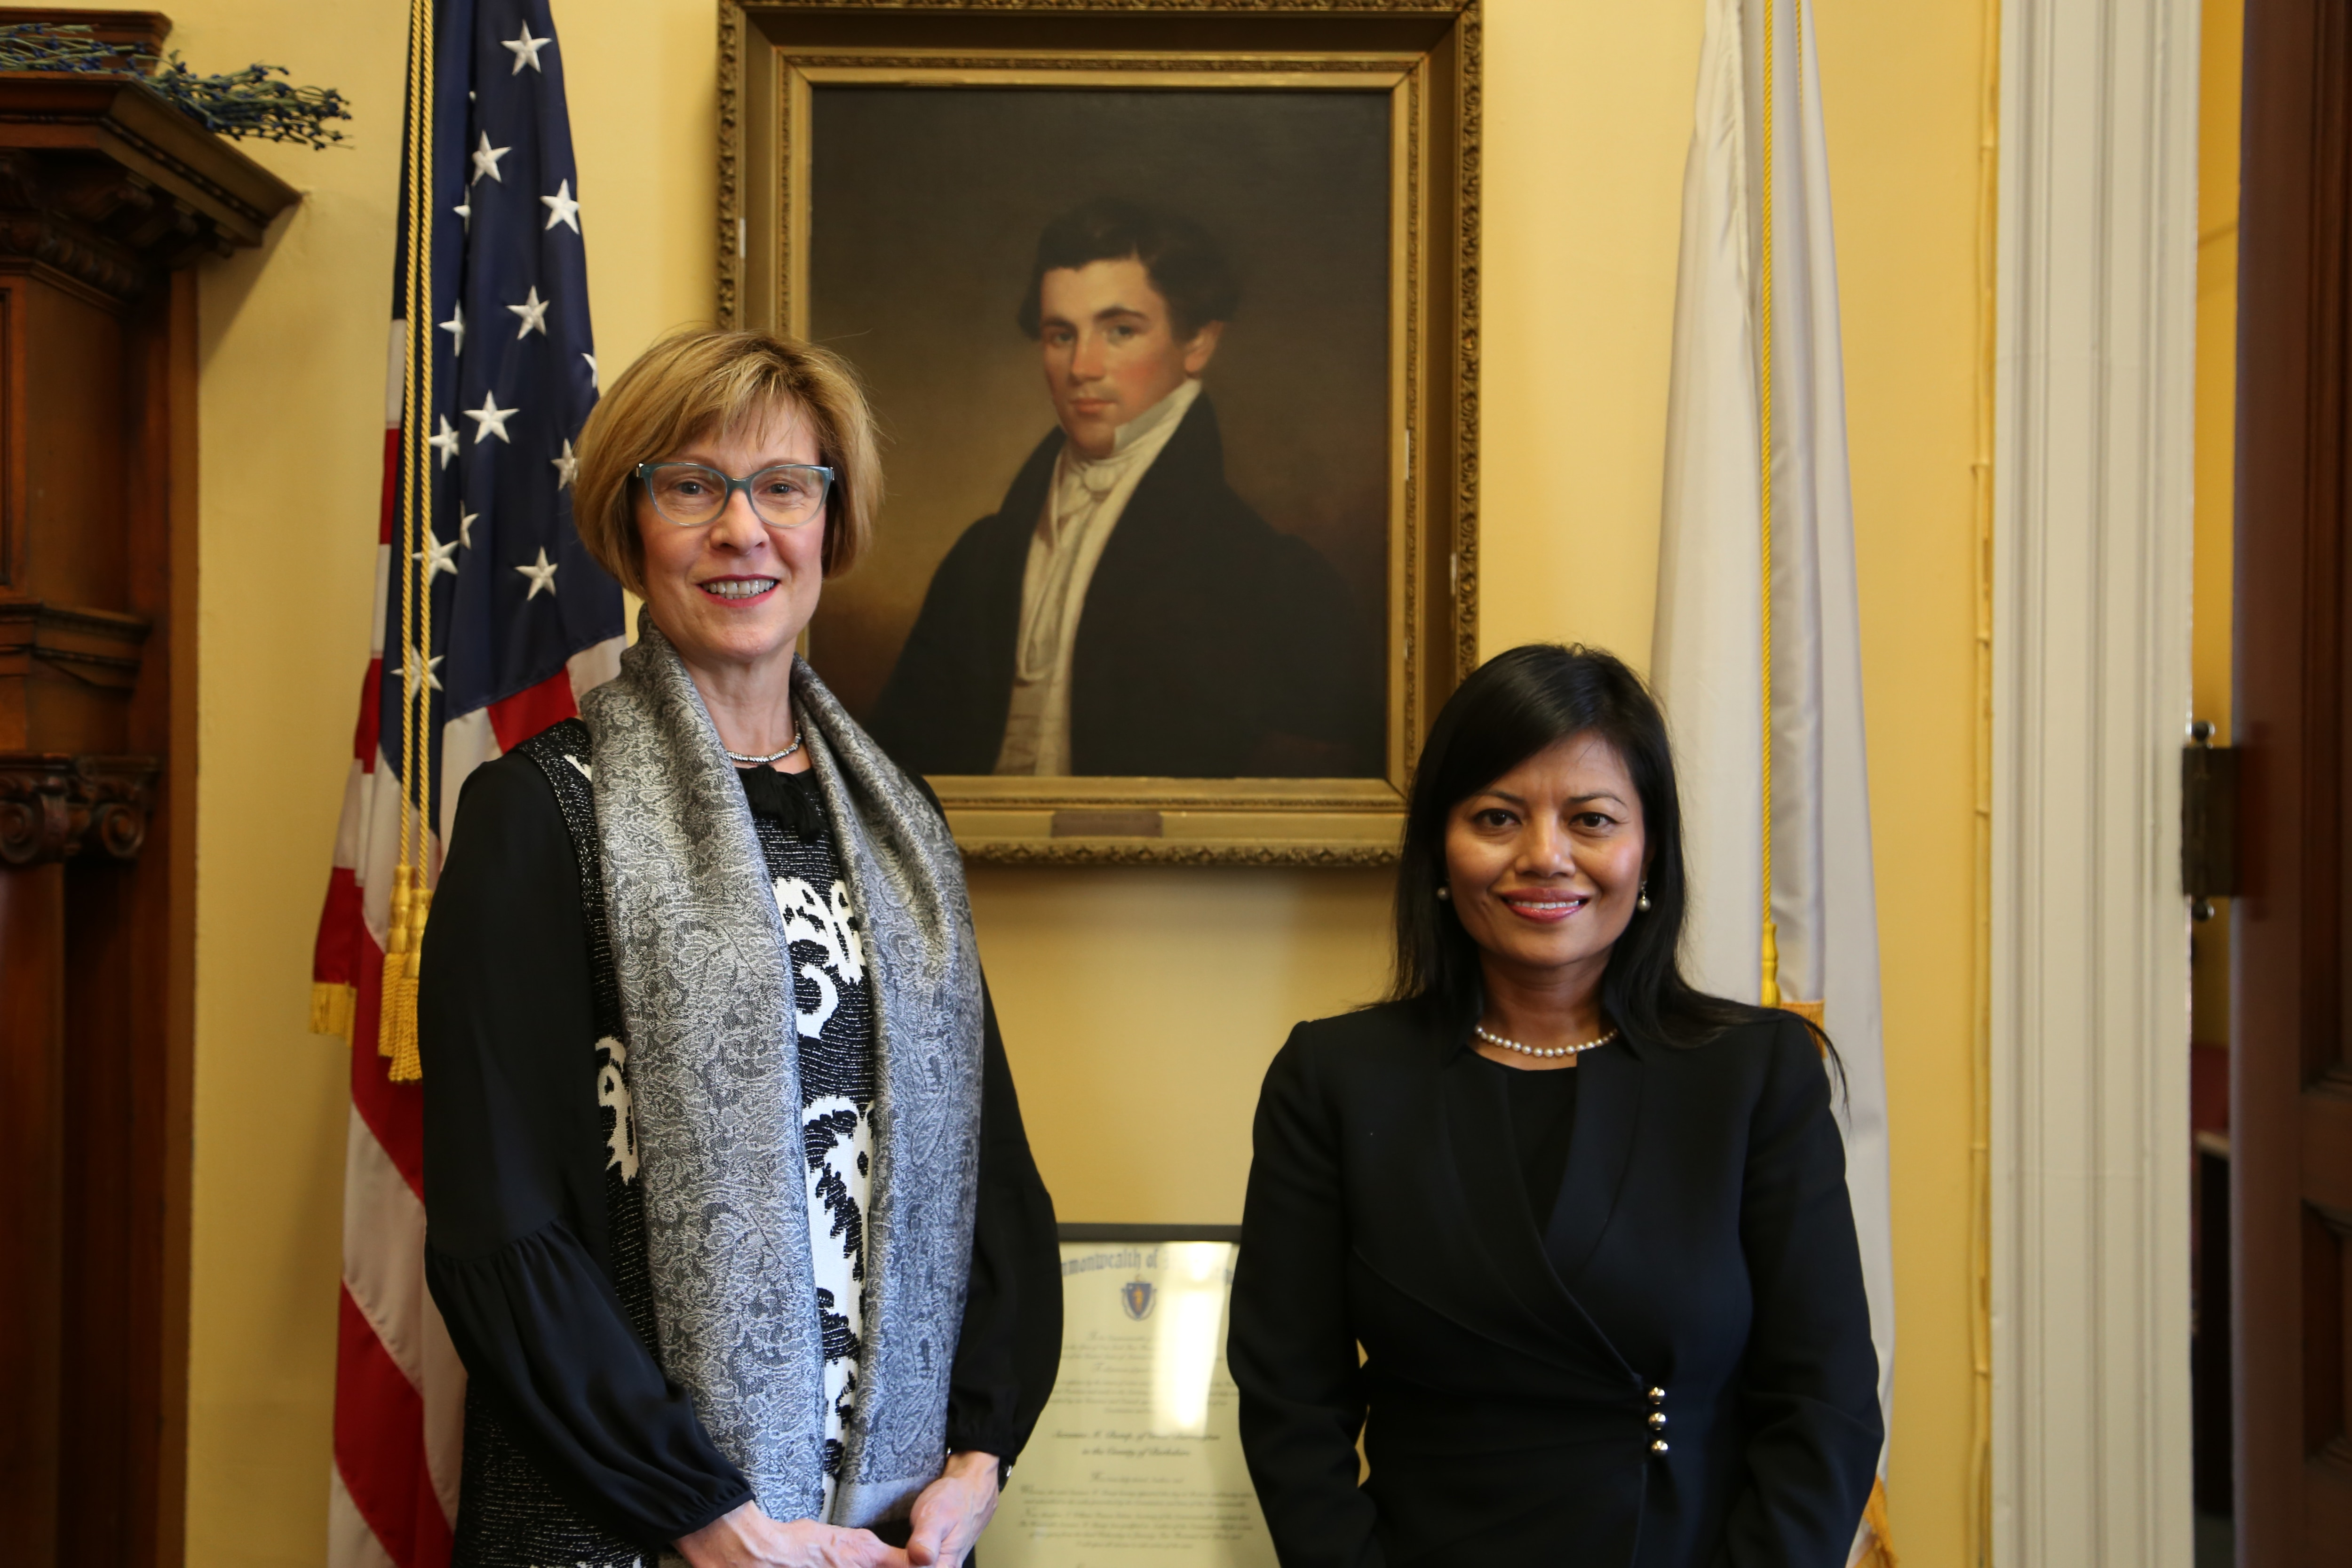 State Auditor Suzanne M. Bump with Vanna Howard, her appointee to the Asian American Commission.